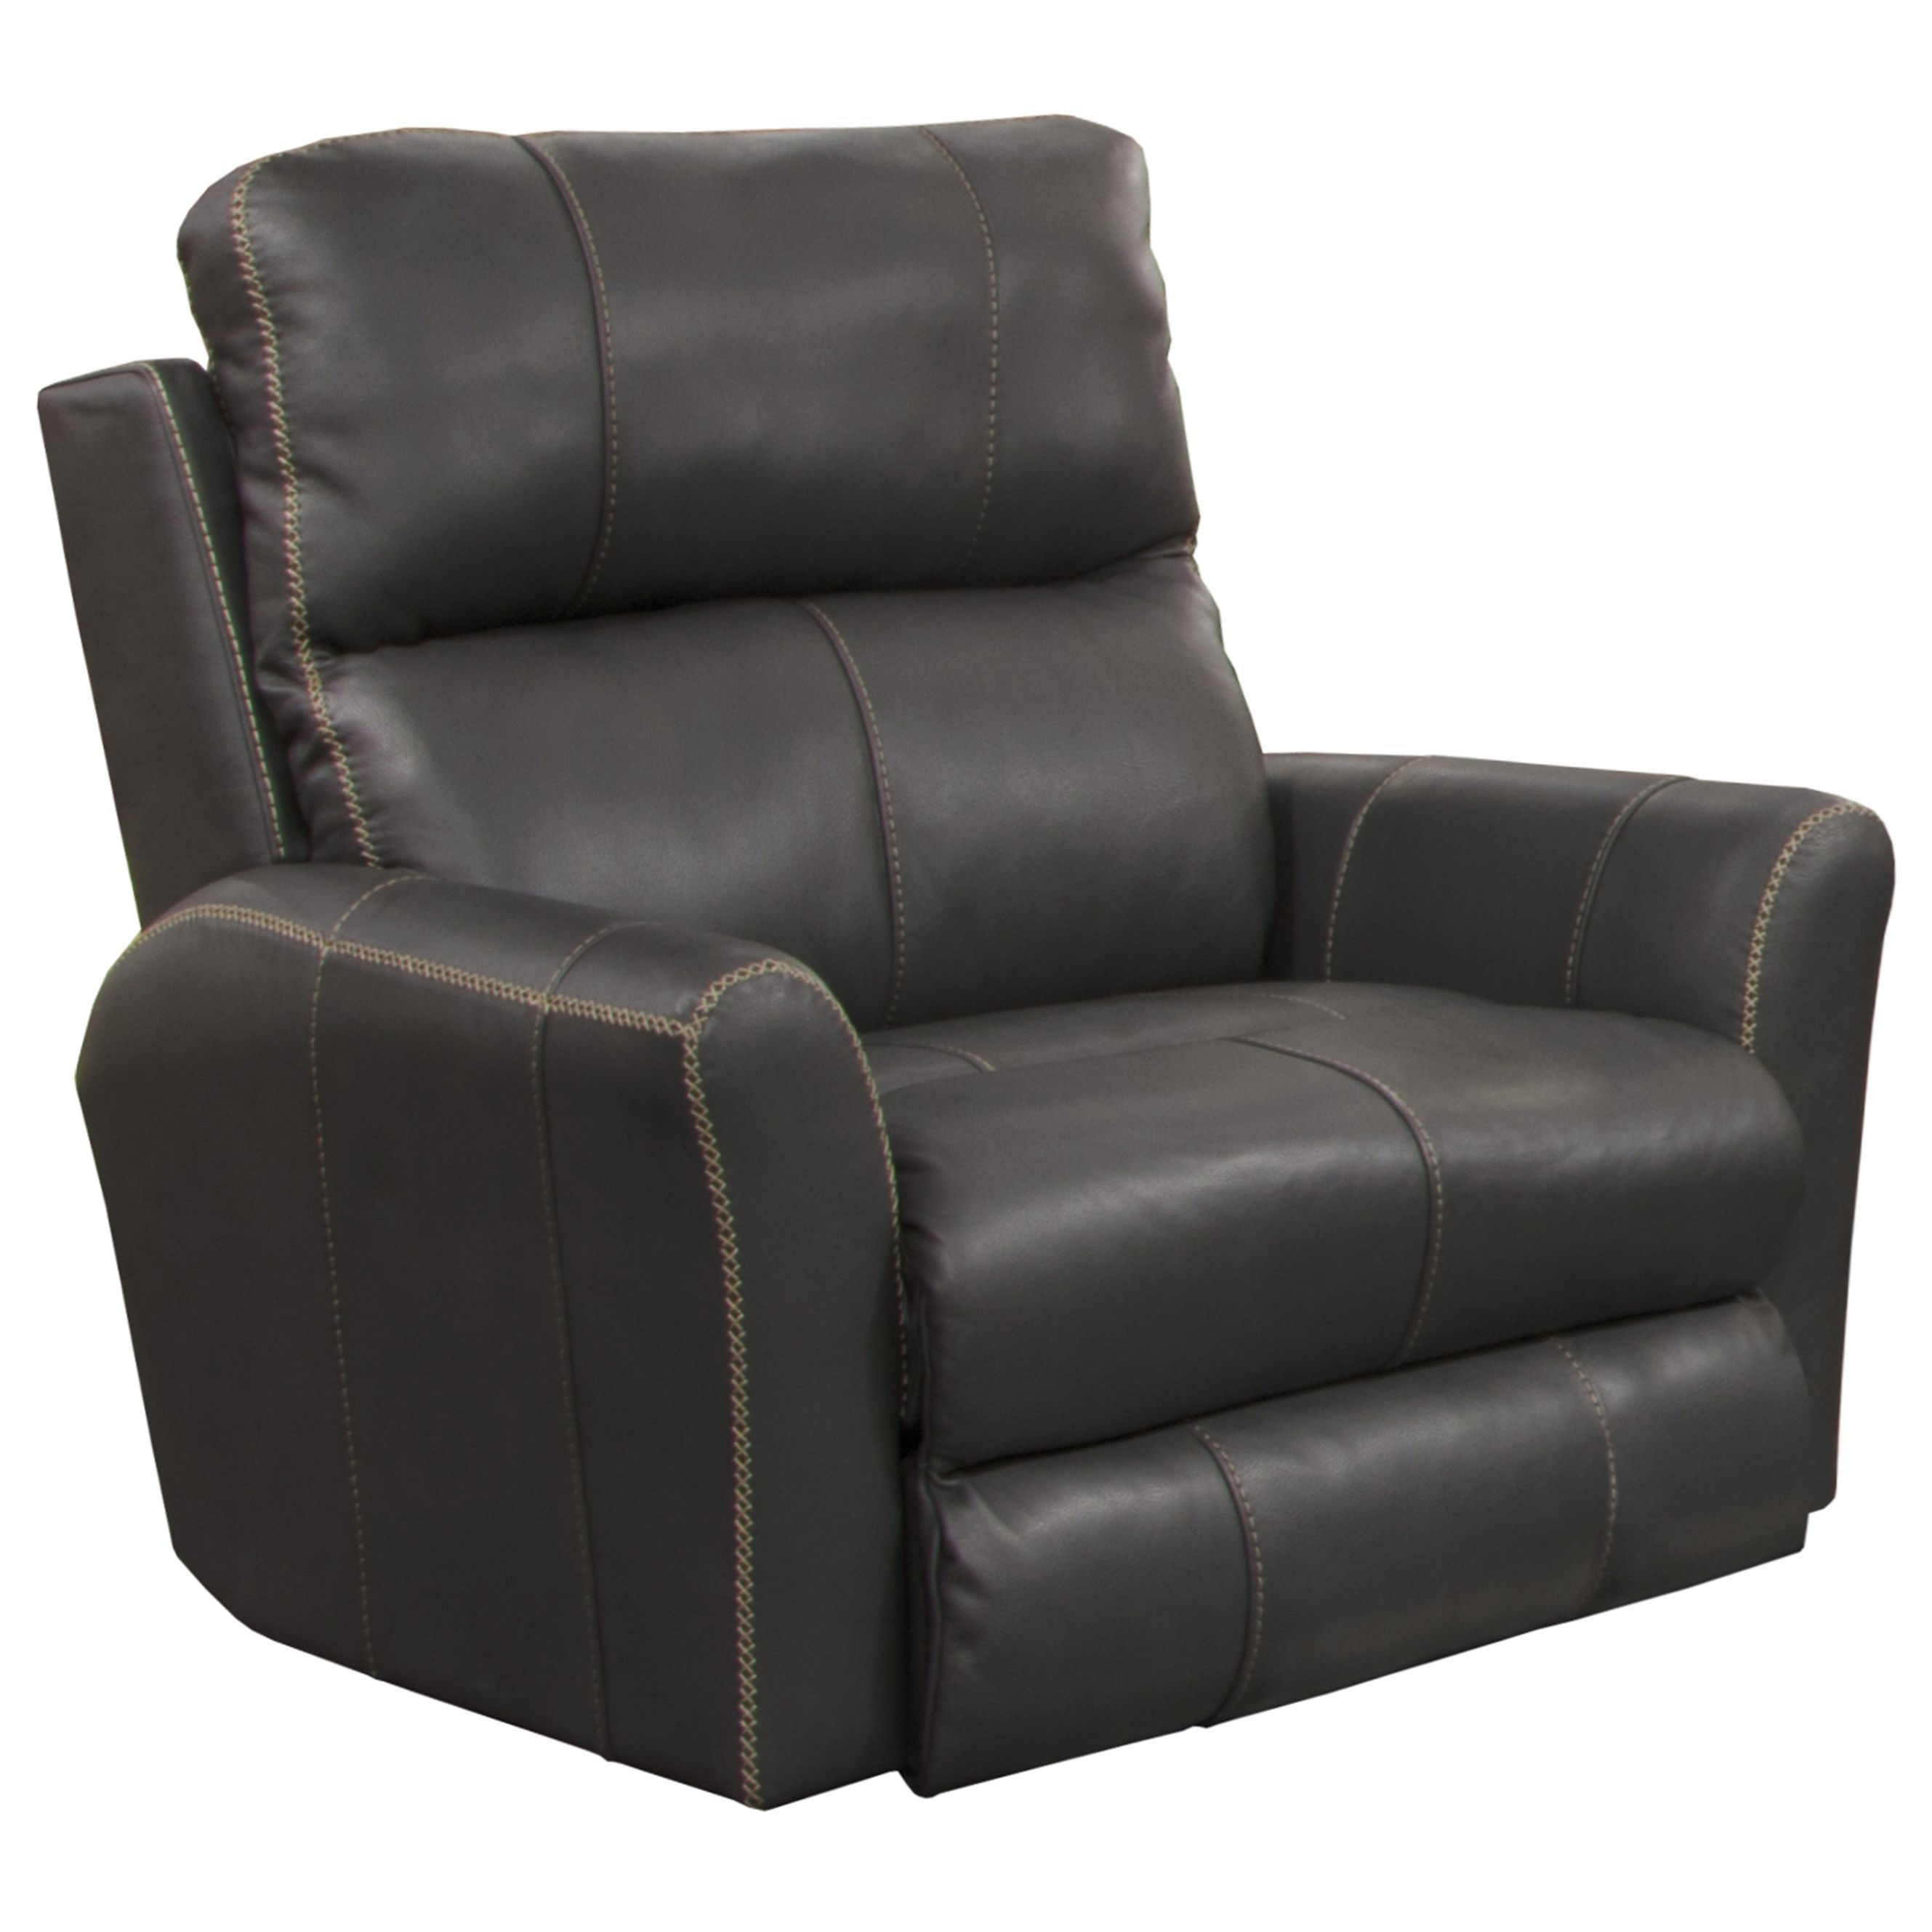 Voice-Controlled Power Lay Flat Recliner